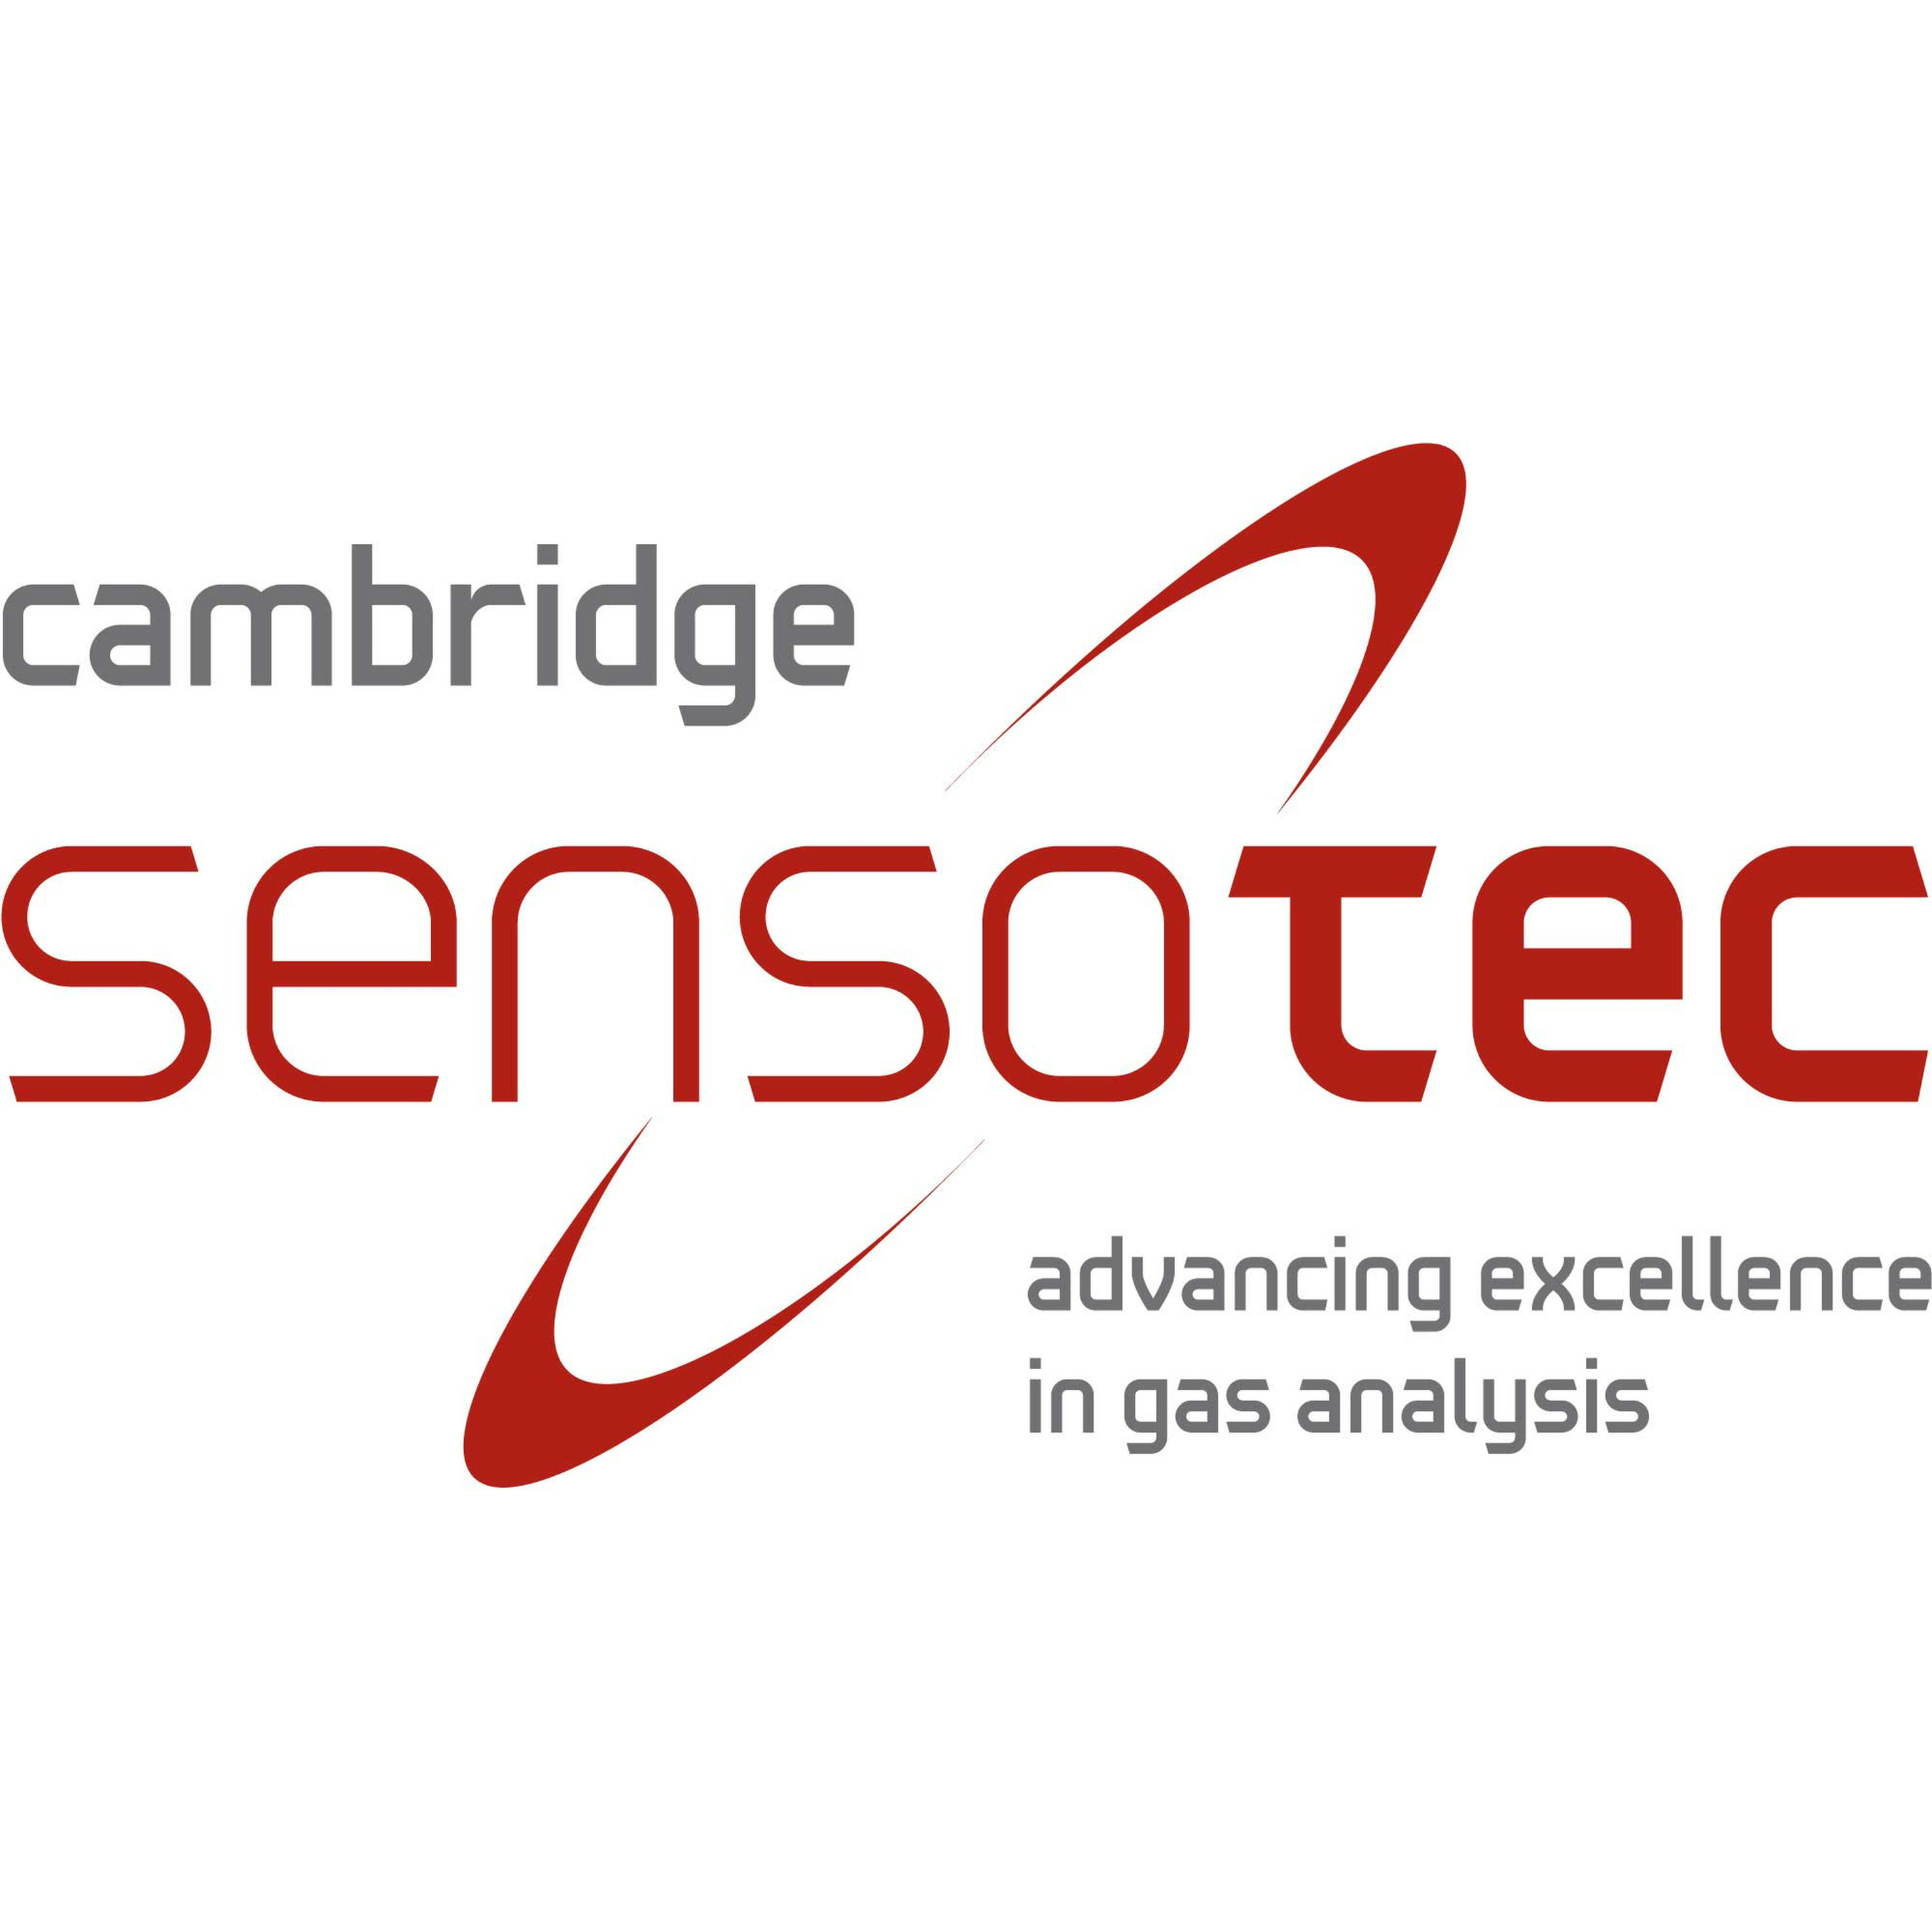 Cambridge_Sensotec_slogan_square_300dpi.jpg